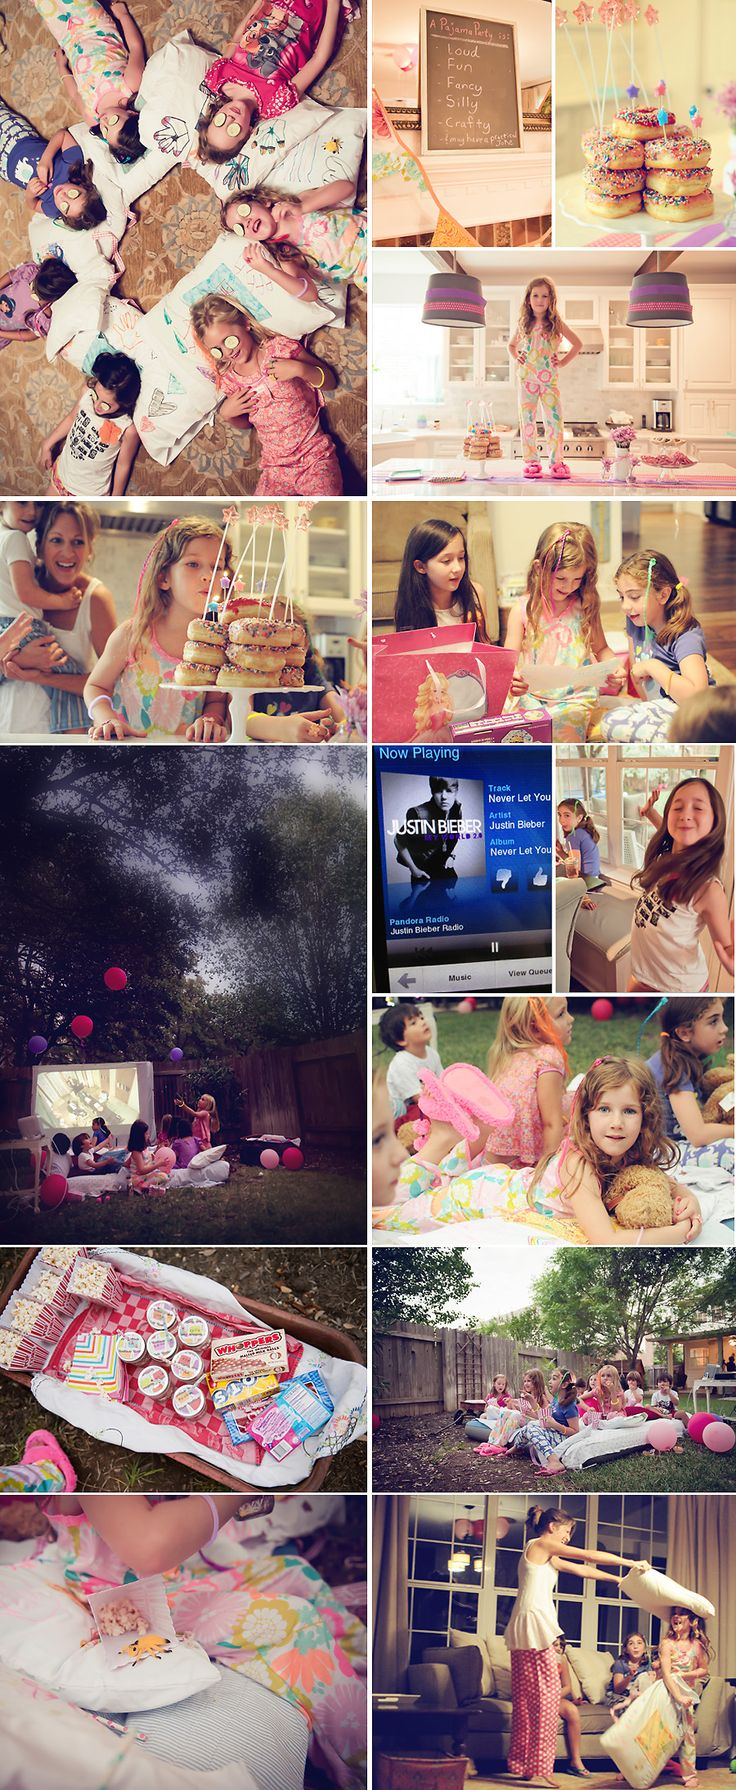 Pajama Night Inspiration: Lovely photos of a Pajama Party by Heather Walker #pjnight